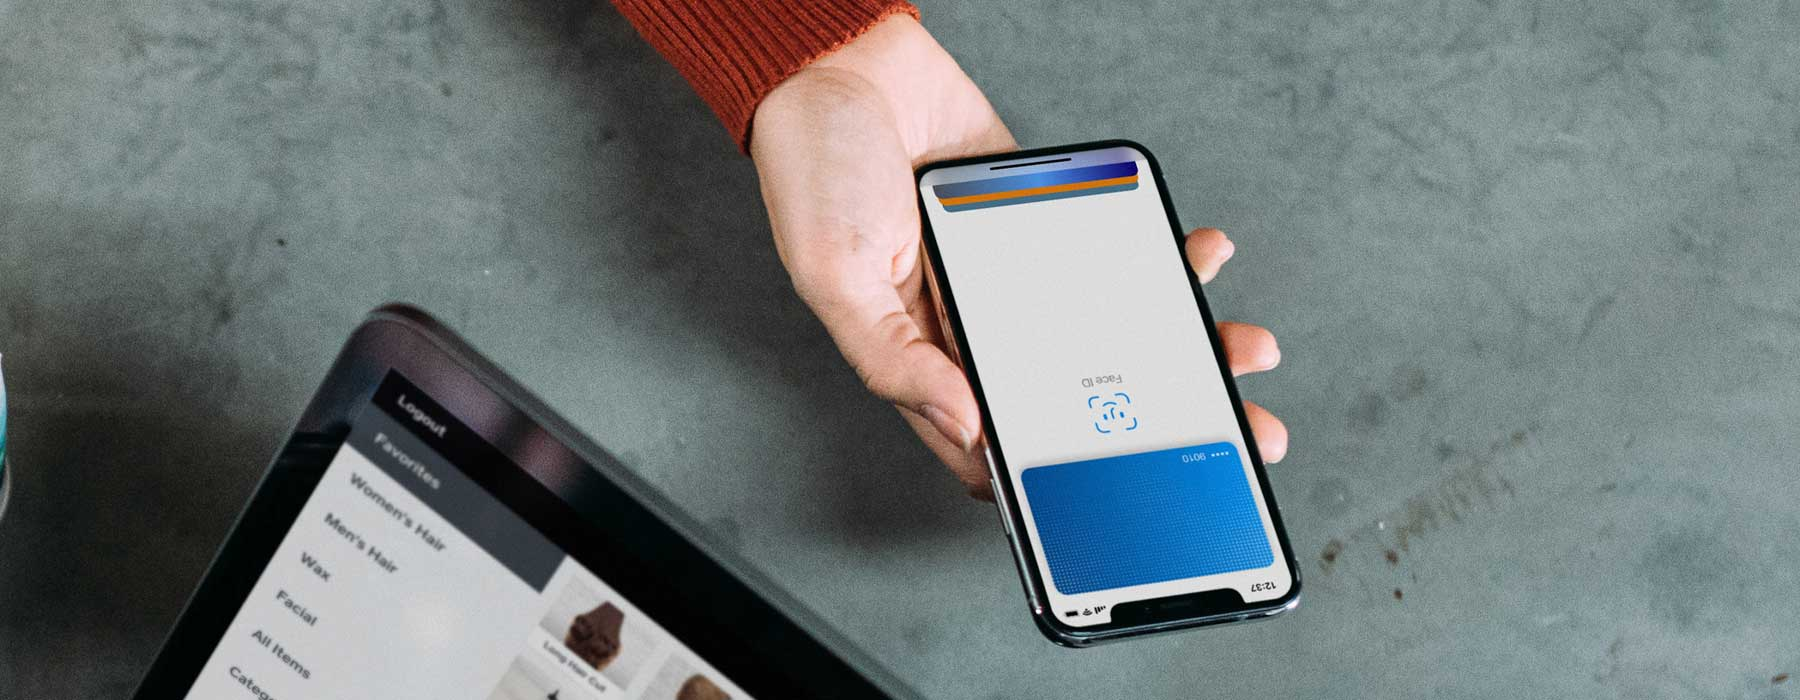 Mobile Payment App Security & Banking App Protection